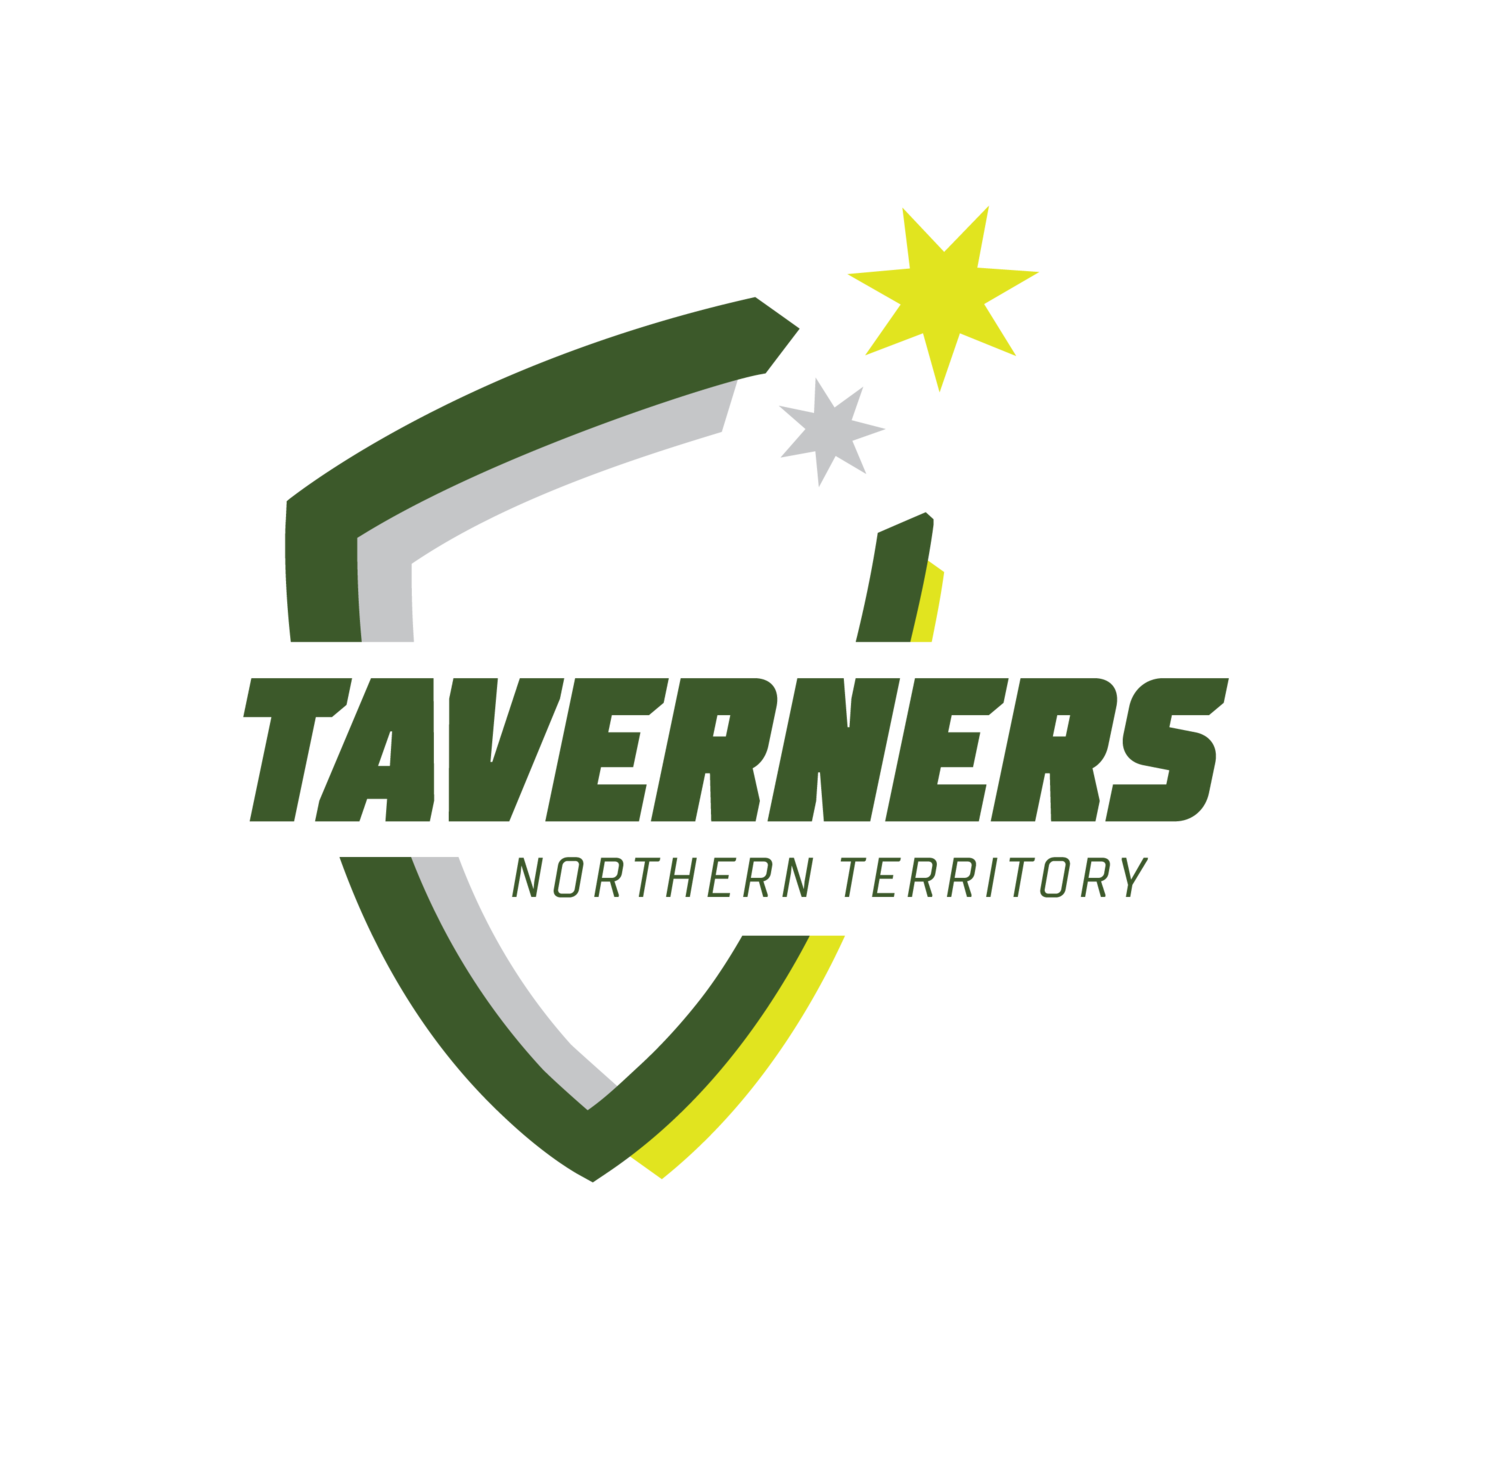 The Lord's Taverners NT